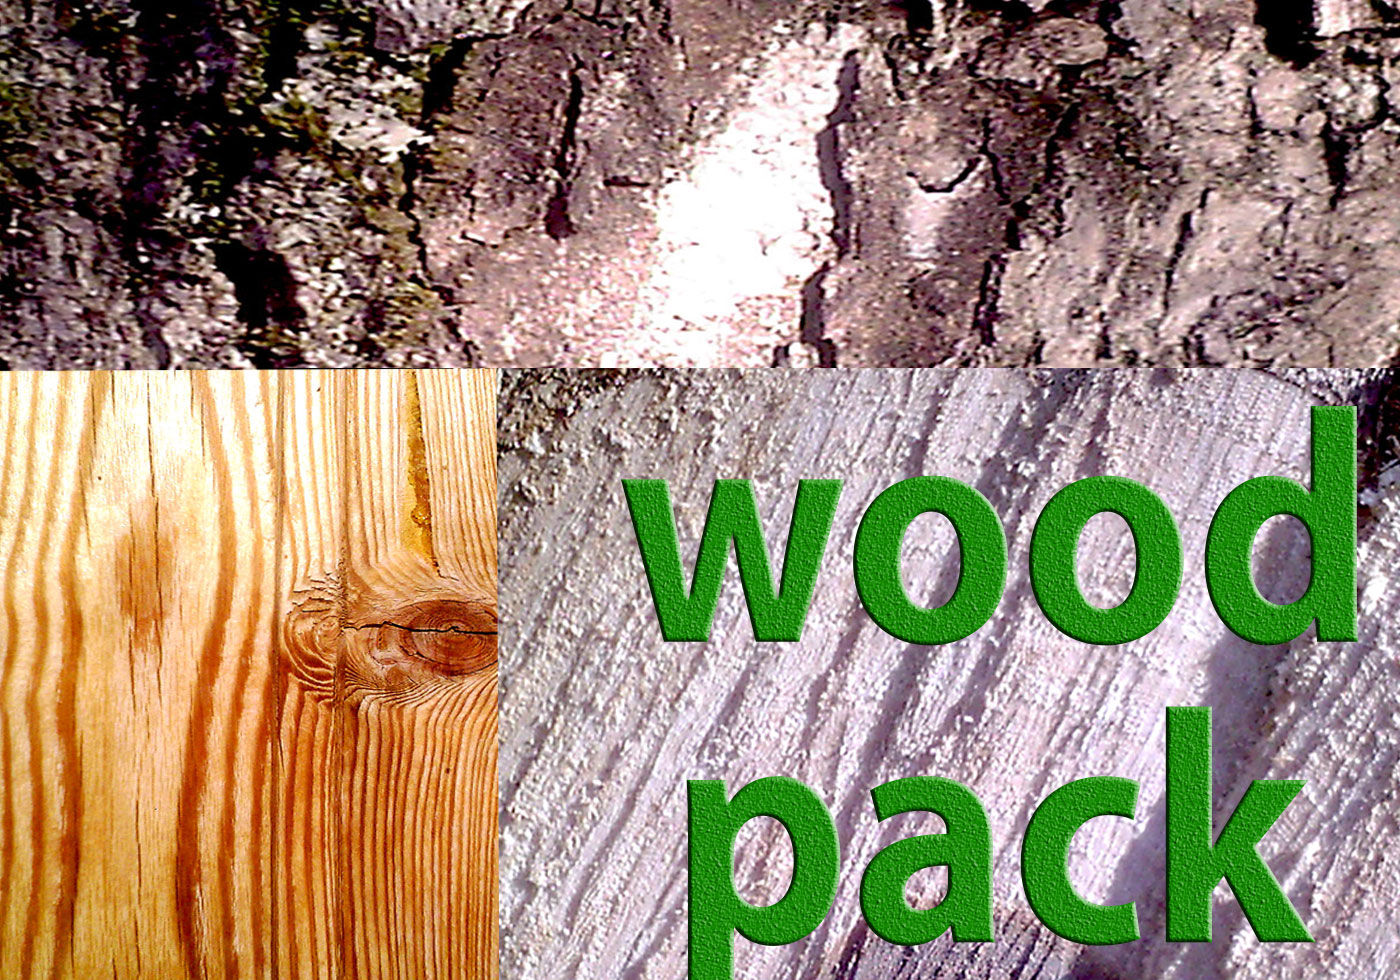 Wood-pack-photoshop-textures